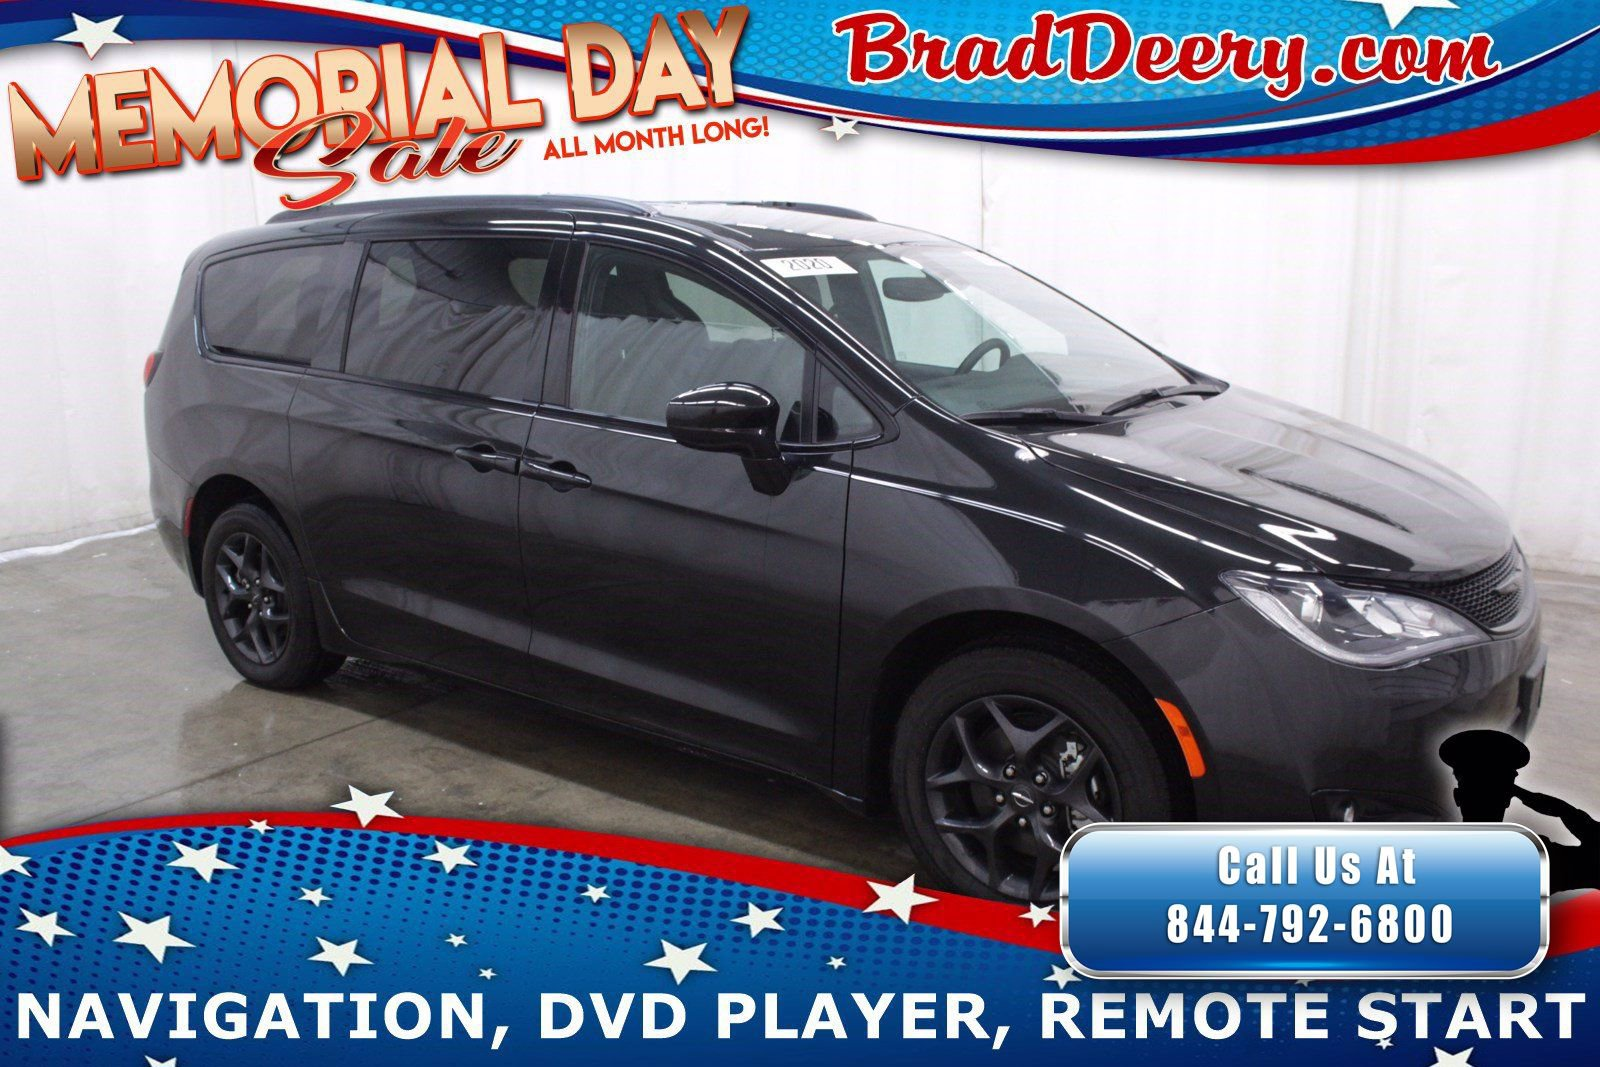 2020 Chrysler Pacifica Touring L Plus   S Appearance Pkg, Navigation,  Blu- Ray Rear Entertainment & Htd Leather Seats